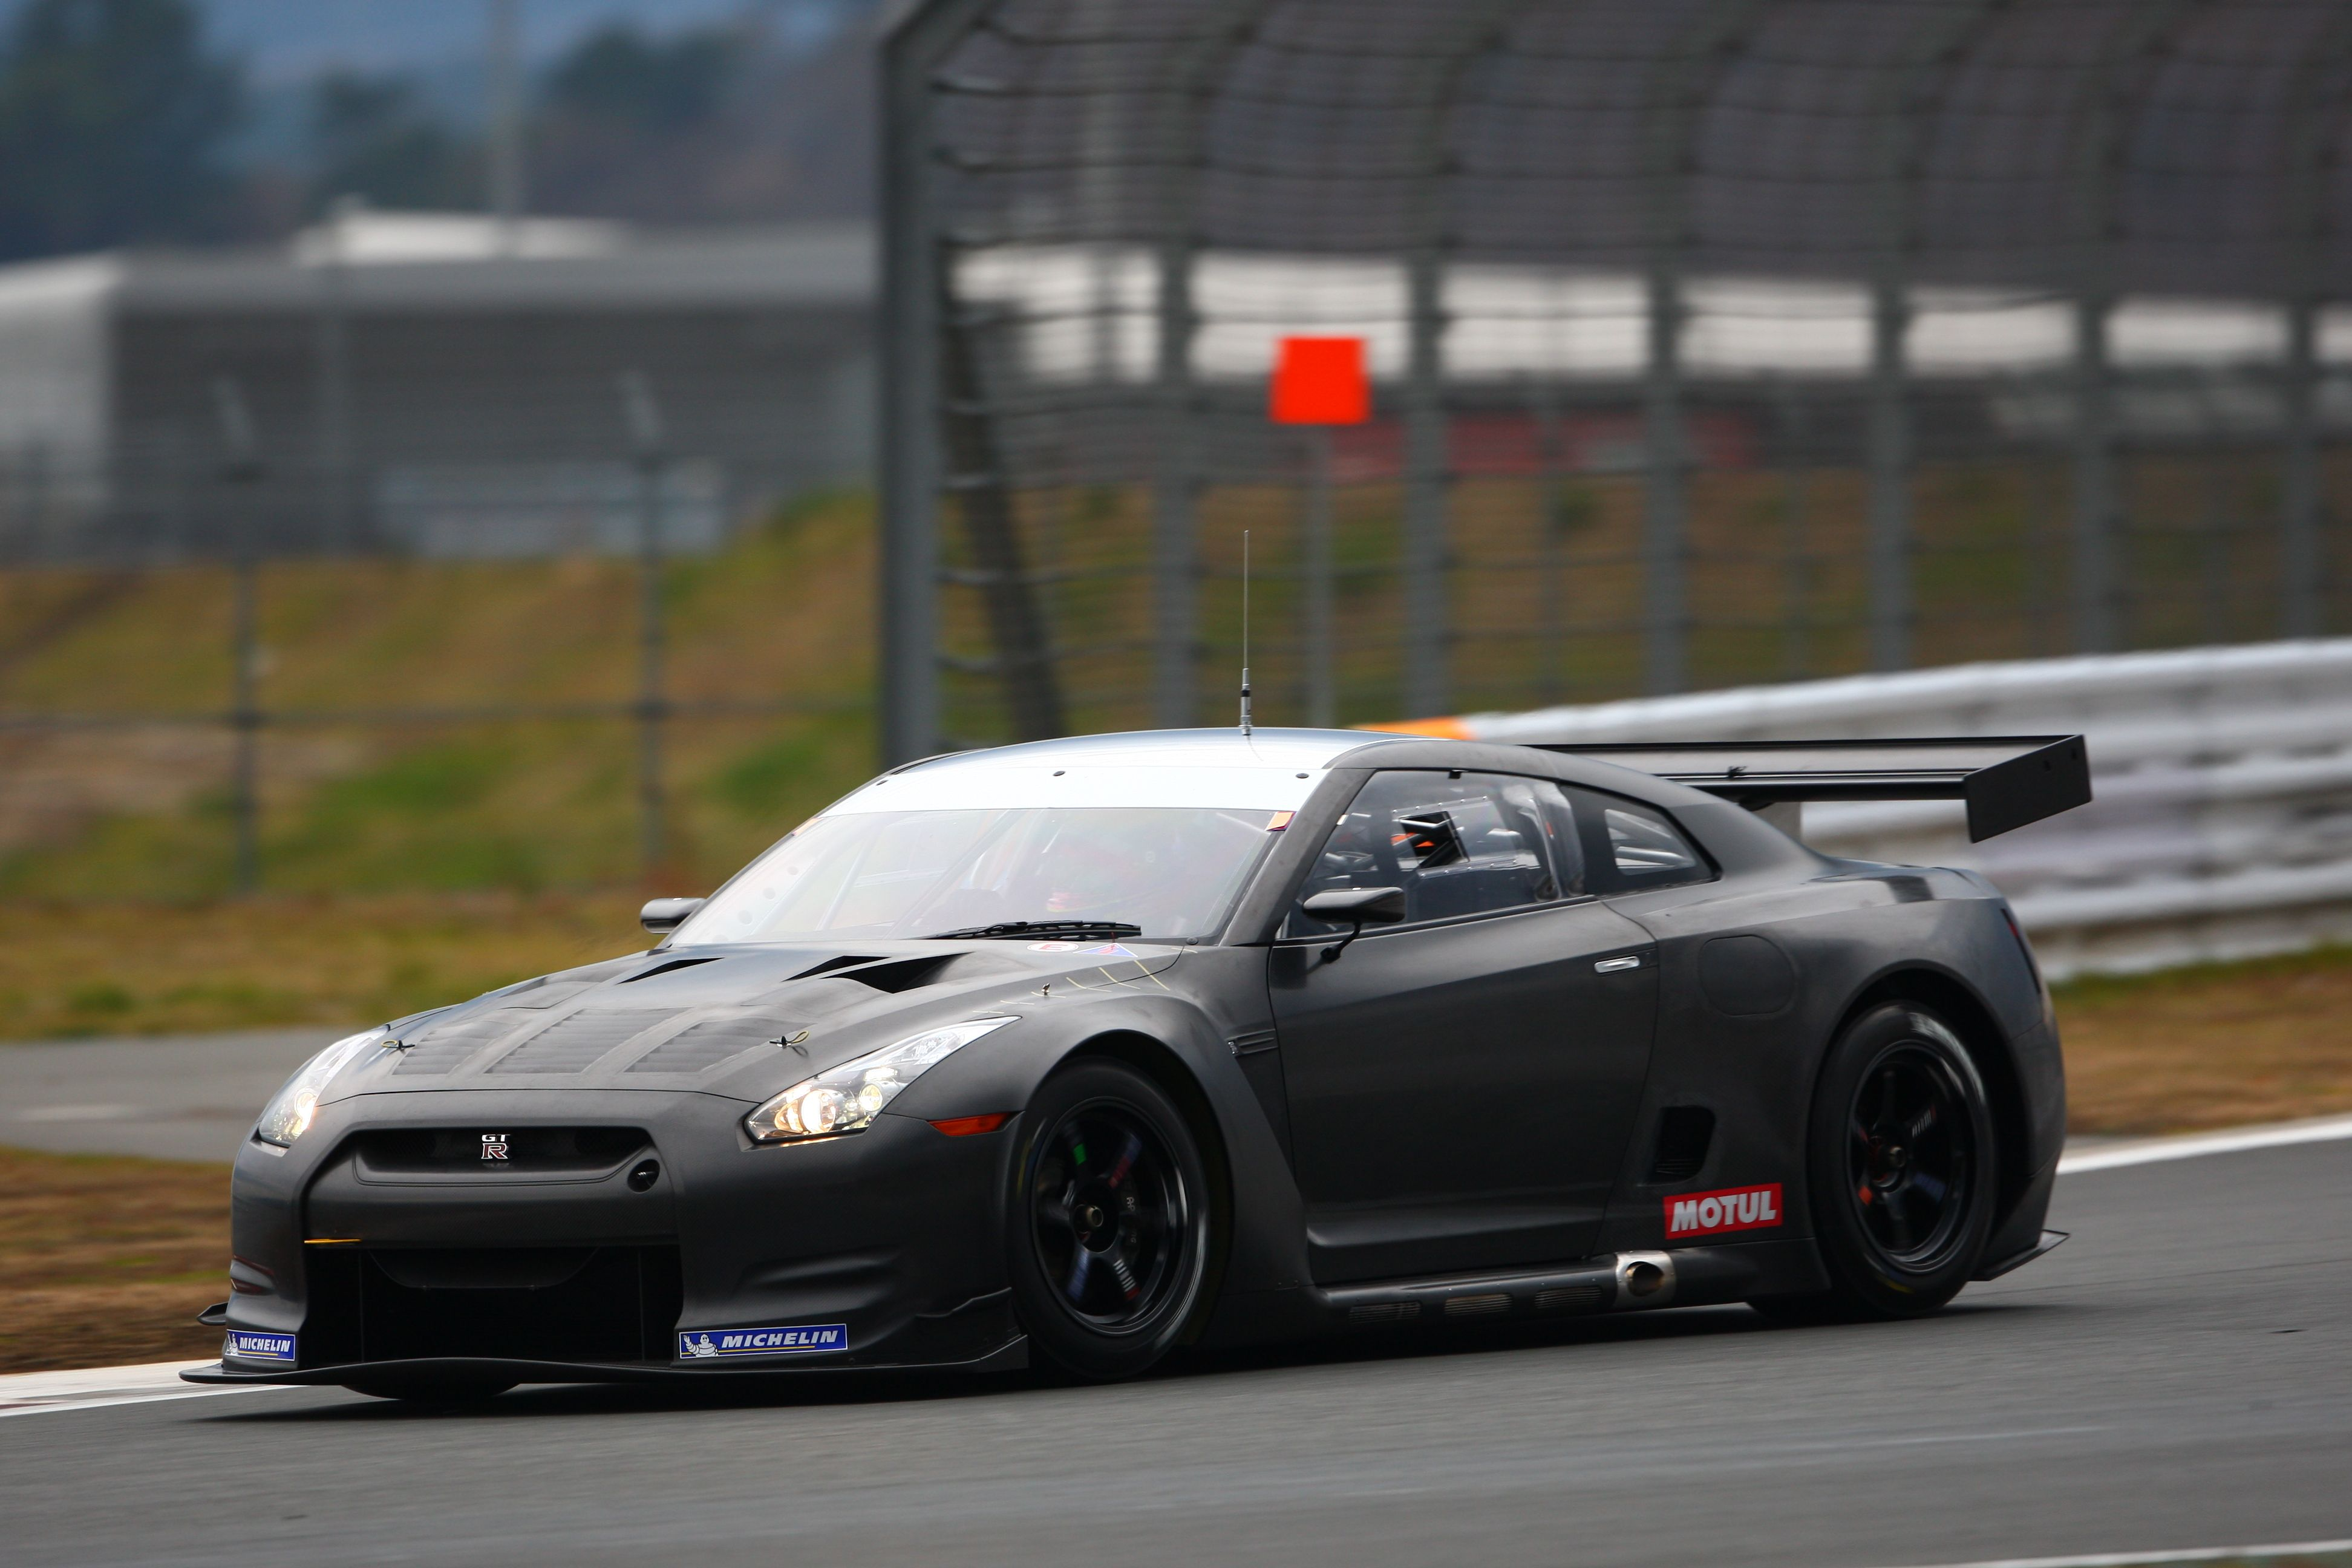 6 2013 Nissan GT R R35 0 100 km h or 0 60 mph 2 7 seconds